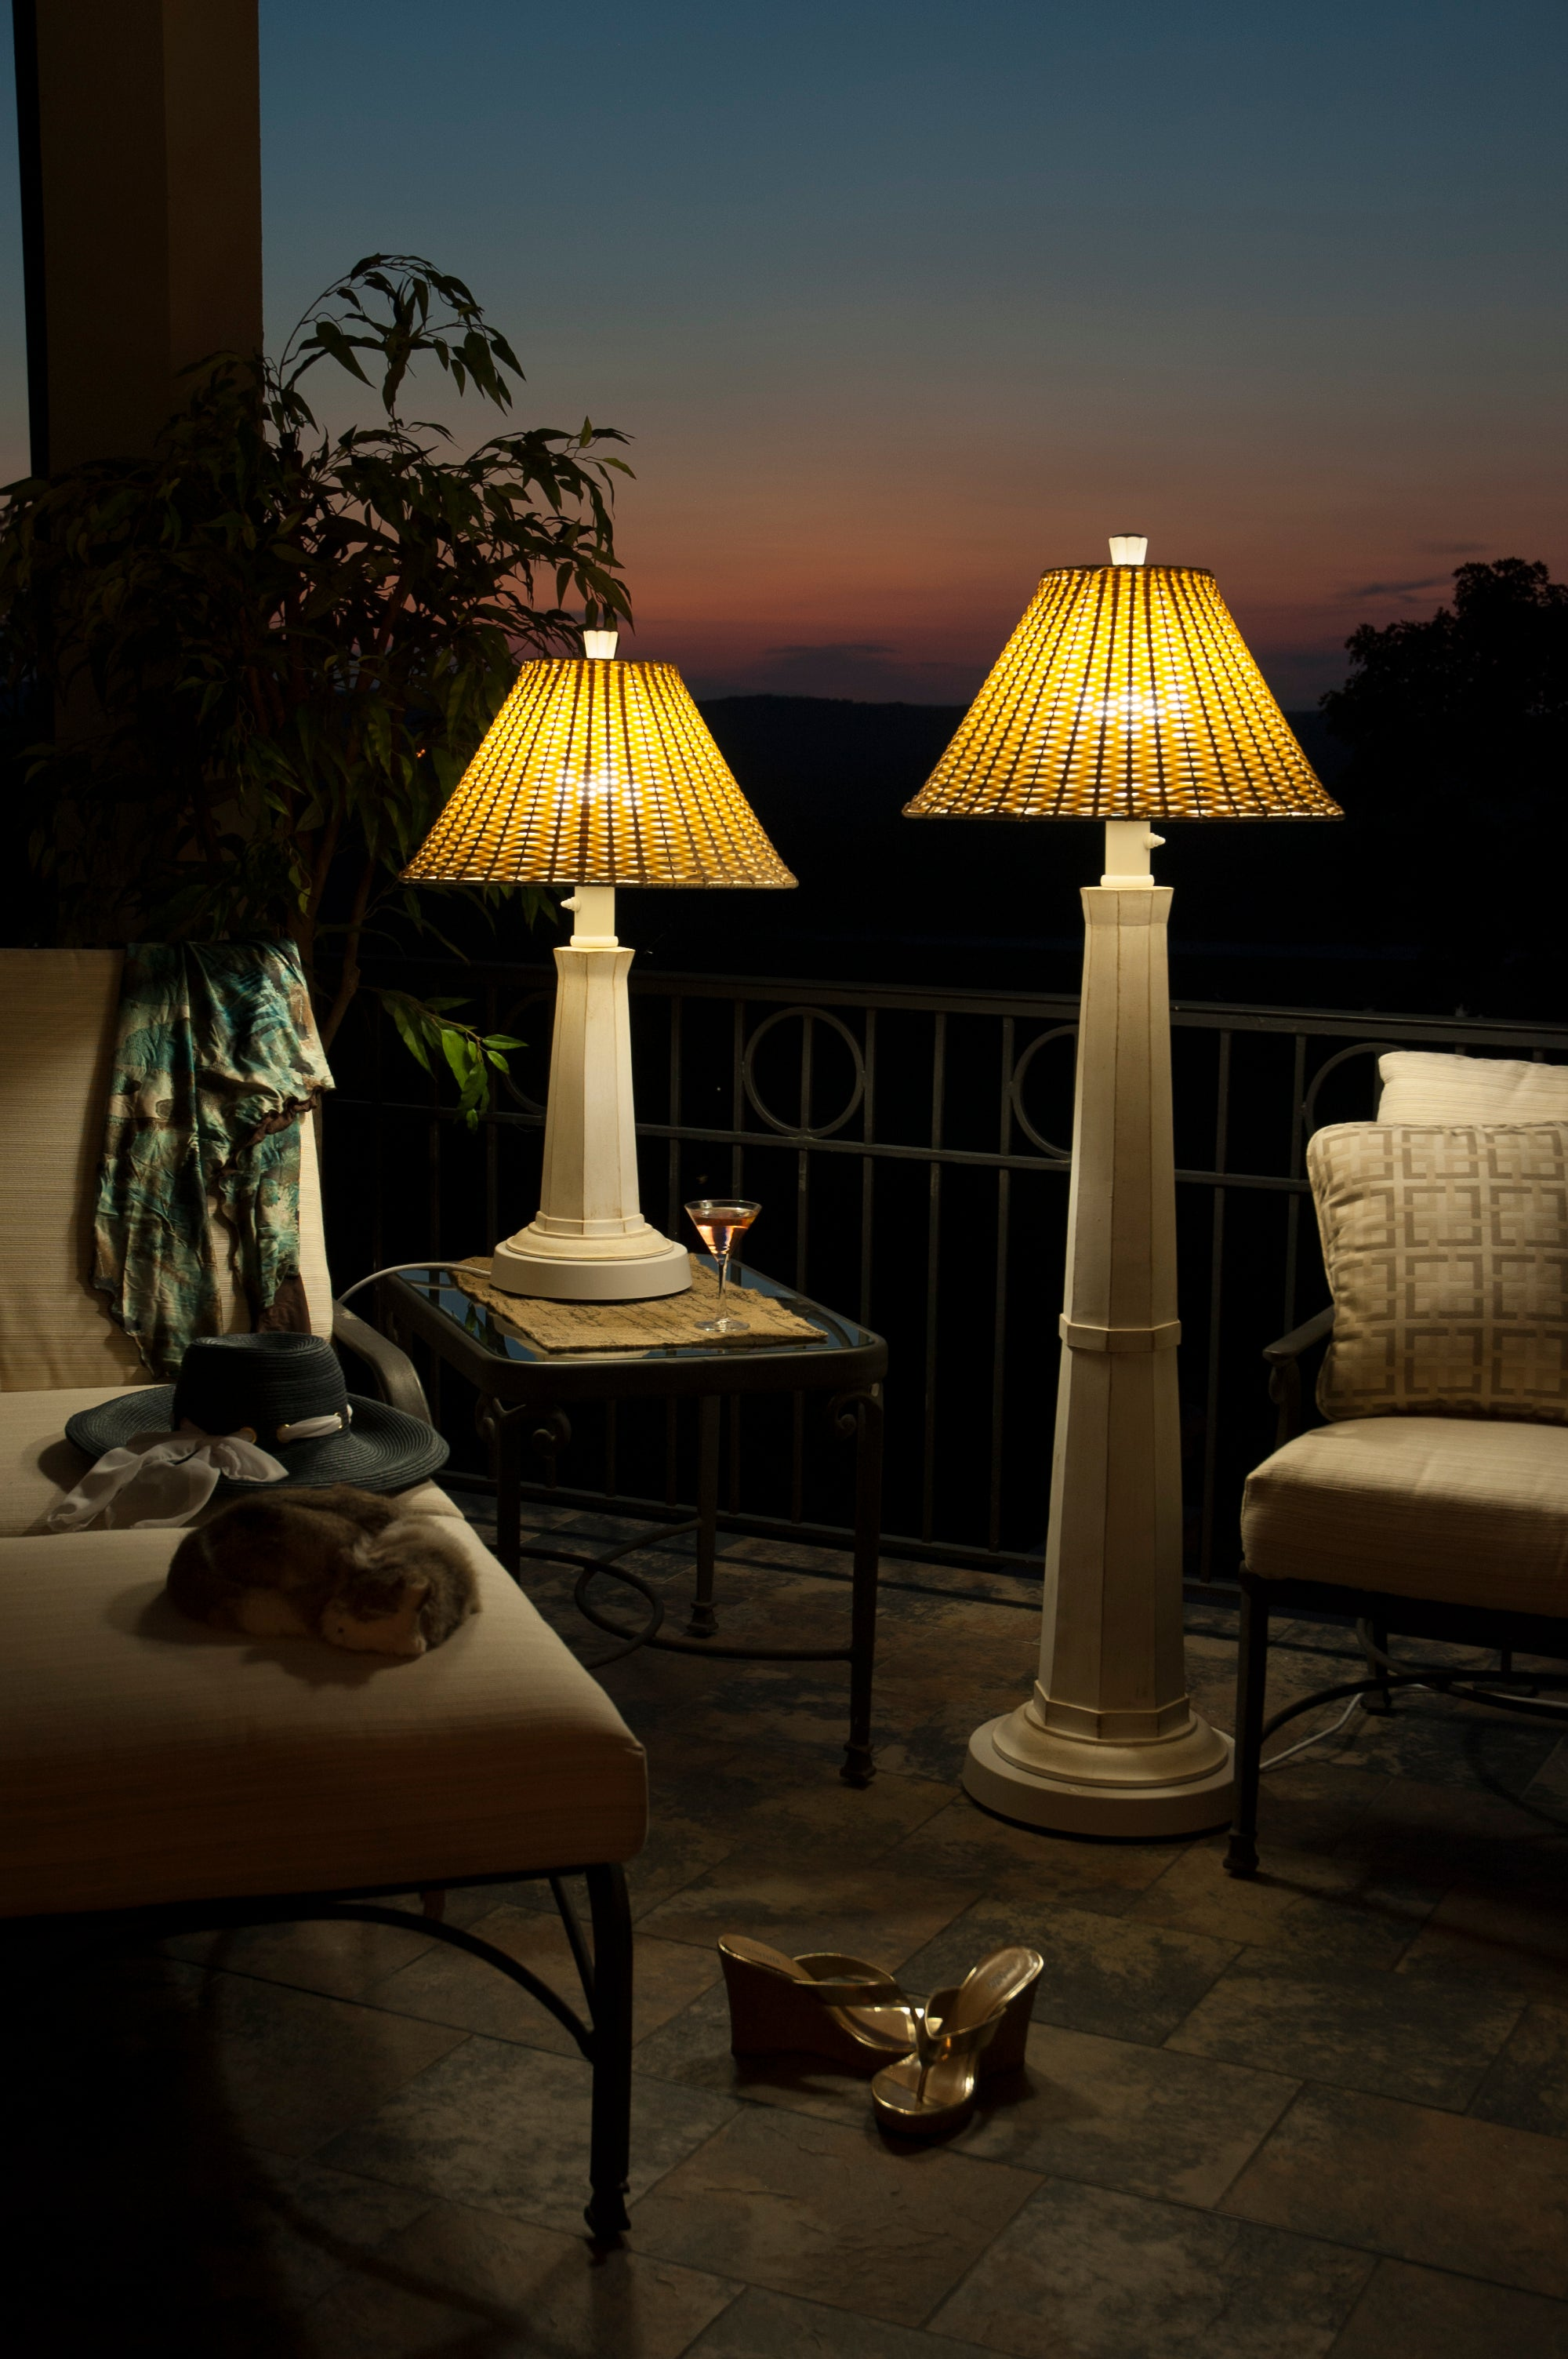 Nantucket Outdoor Table Lamp 19902 with Stone Wicker Shade